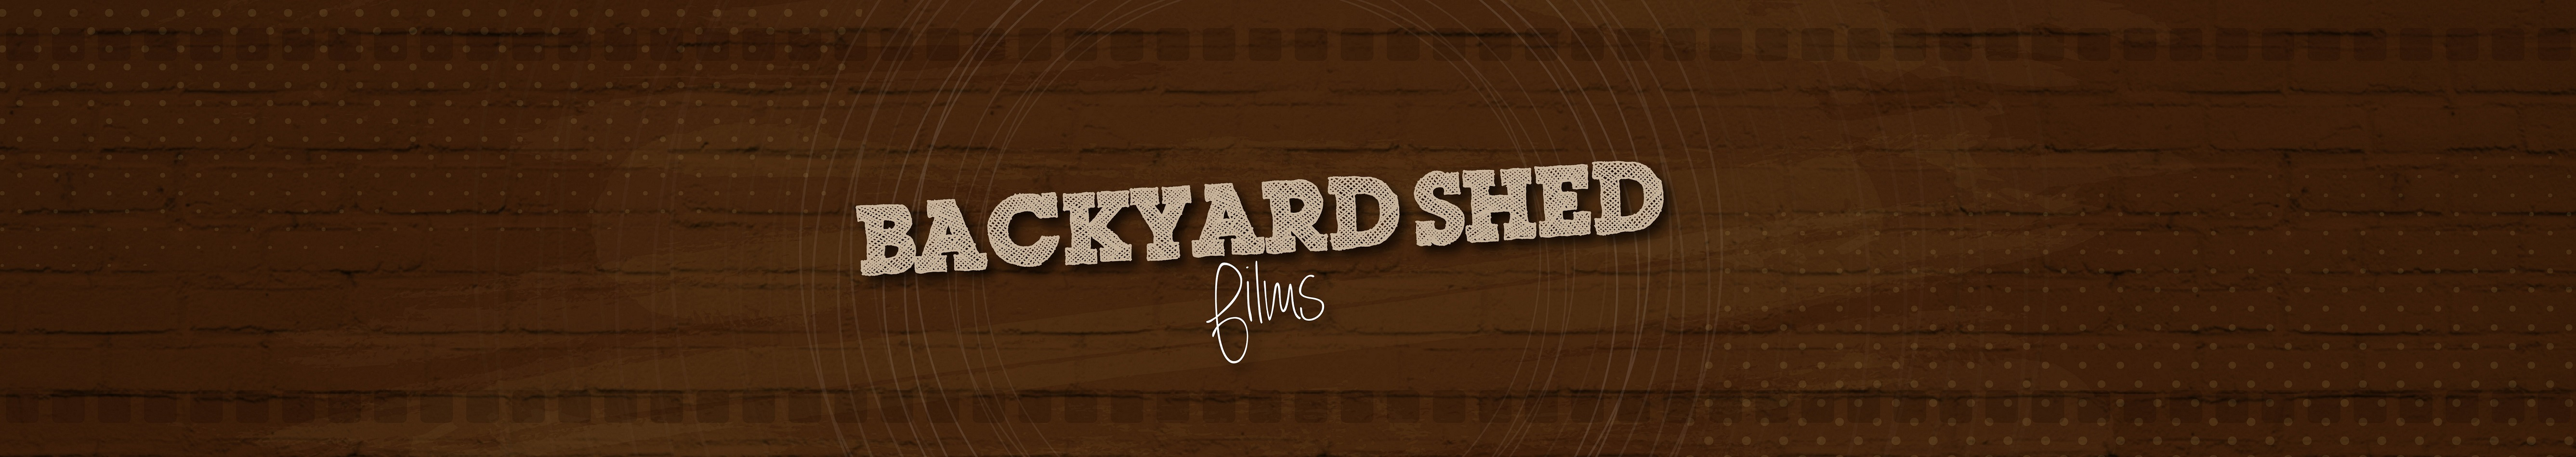 BP Make it Right | Backyard Shed Films